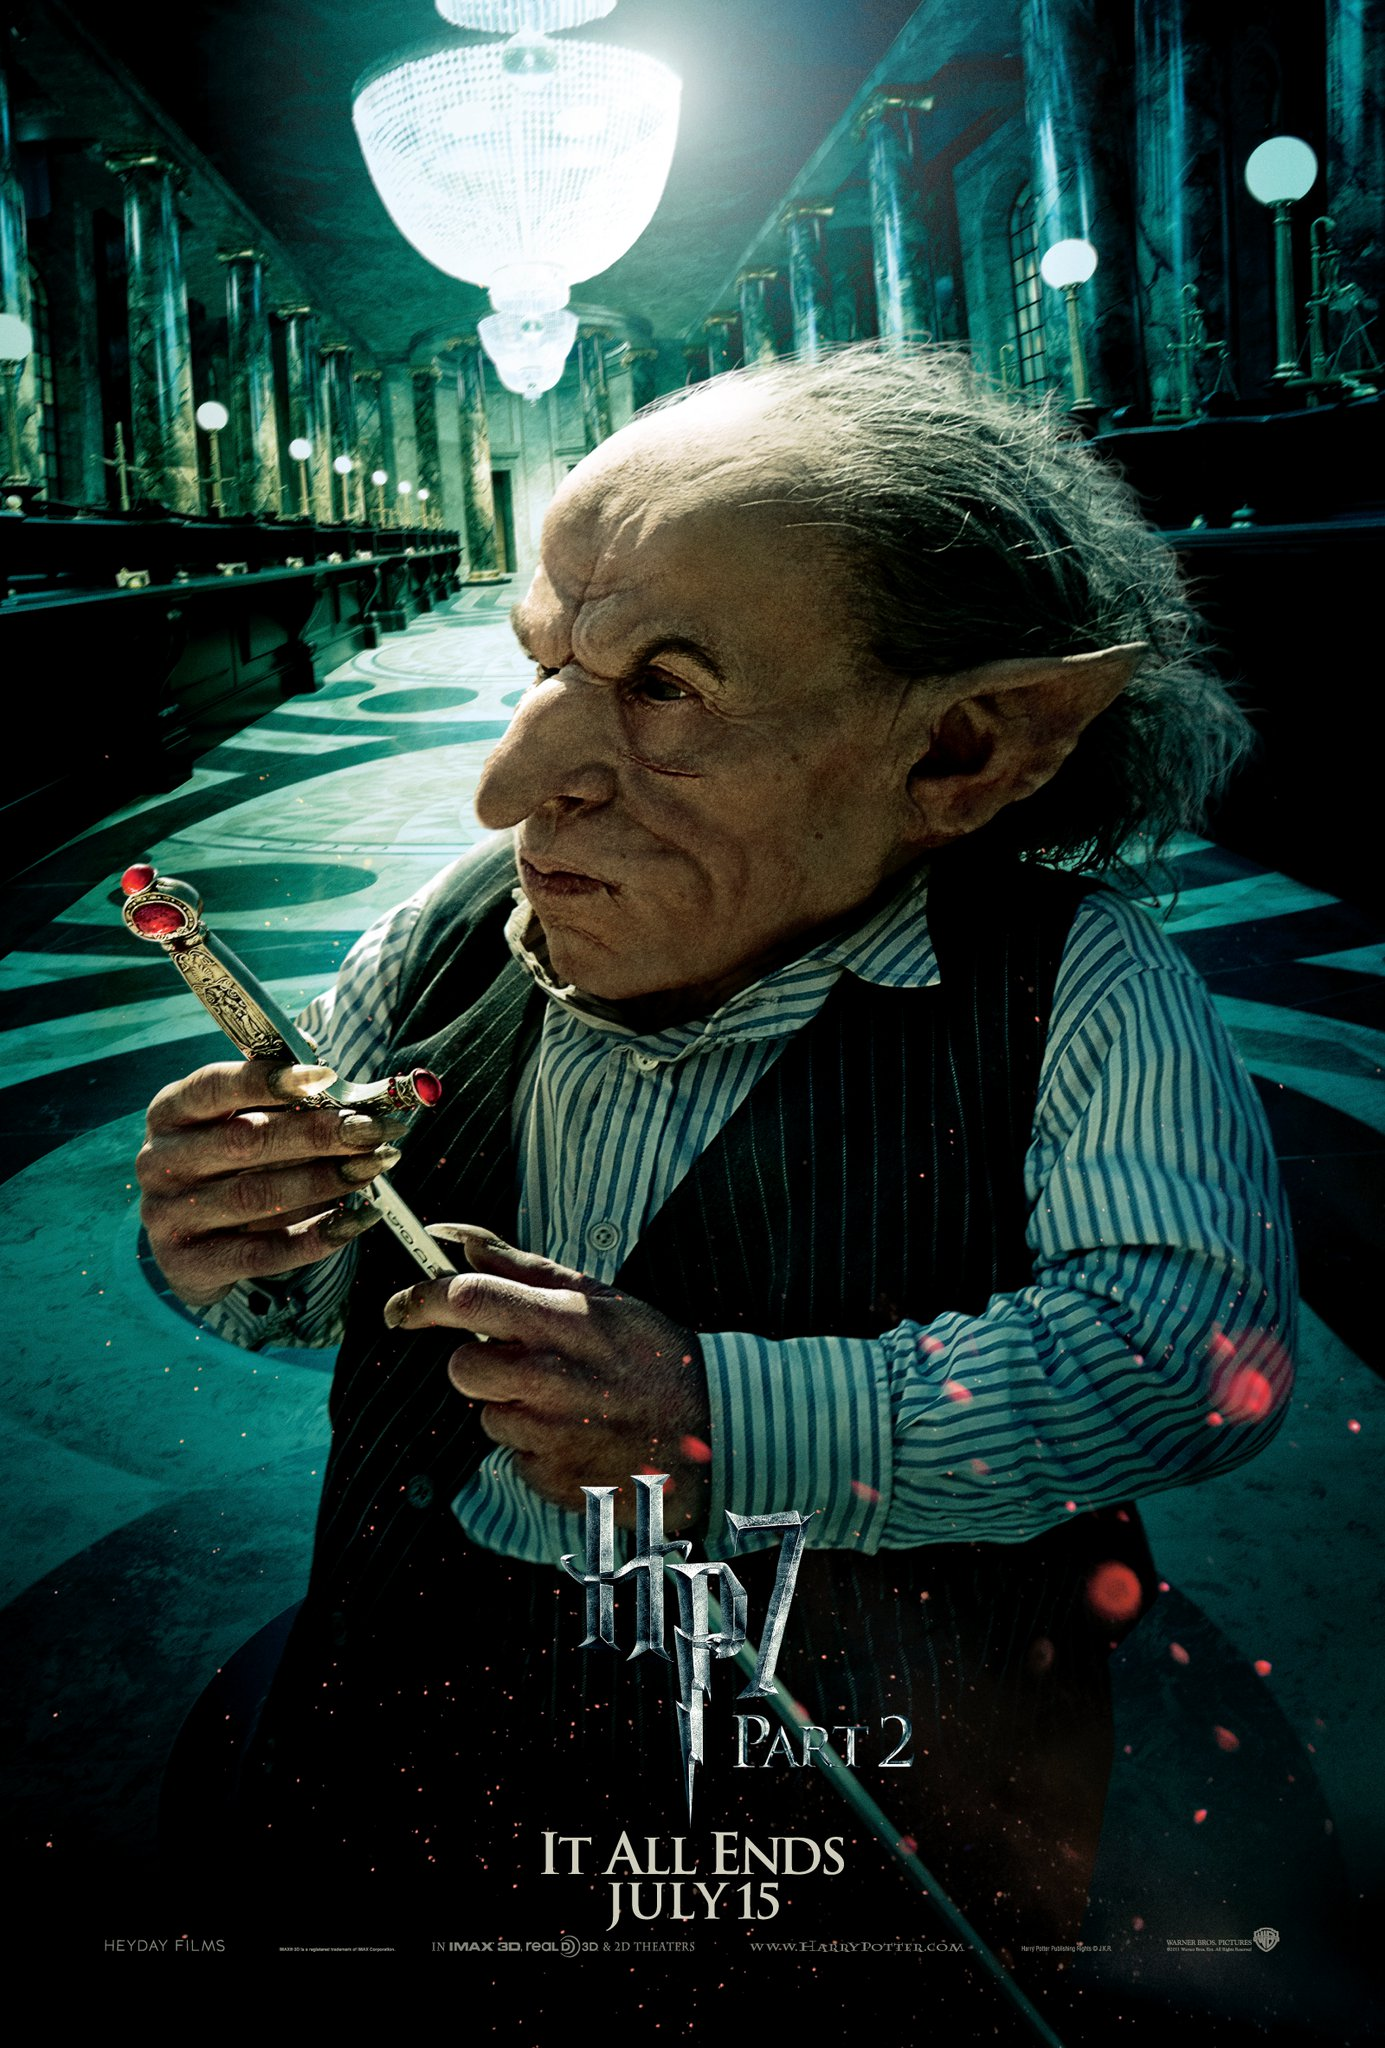 Wallpaper Harry Potter HP7 Part 2 poster - Goblin